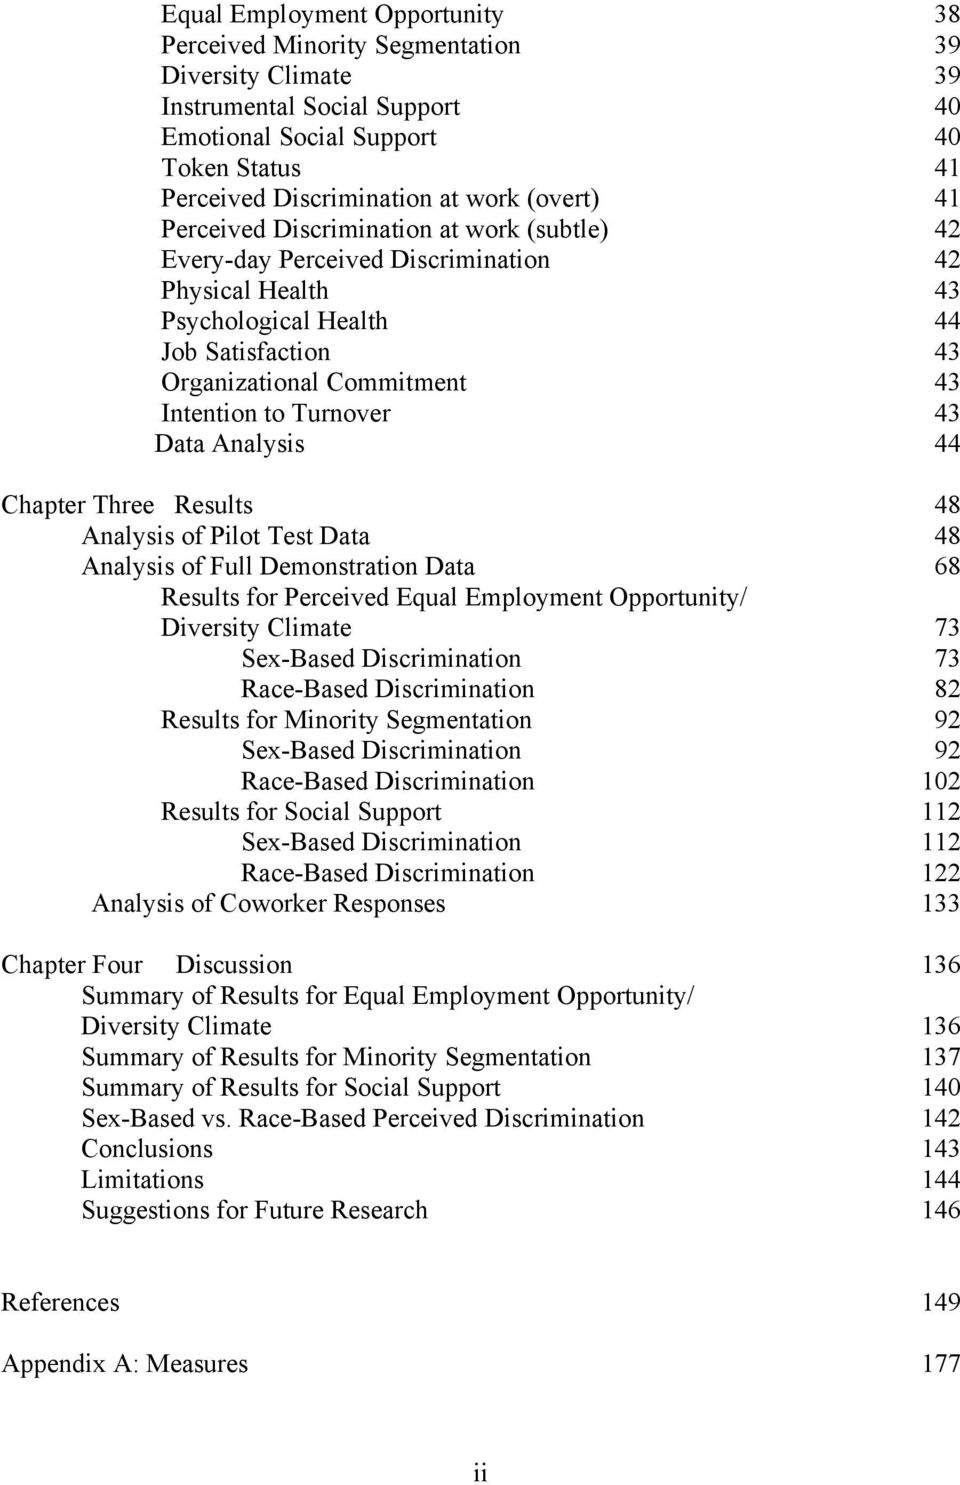 Turnover 43 Data Analysis 44 Chapter Three Results 48 Analysis of Pilot Test Data 48 Analysis of Full Demonstration Data 68 Results for Perceived Equal Employment Opportunity/ Diversity Climate 73